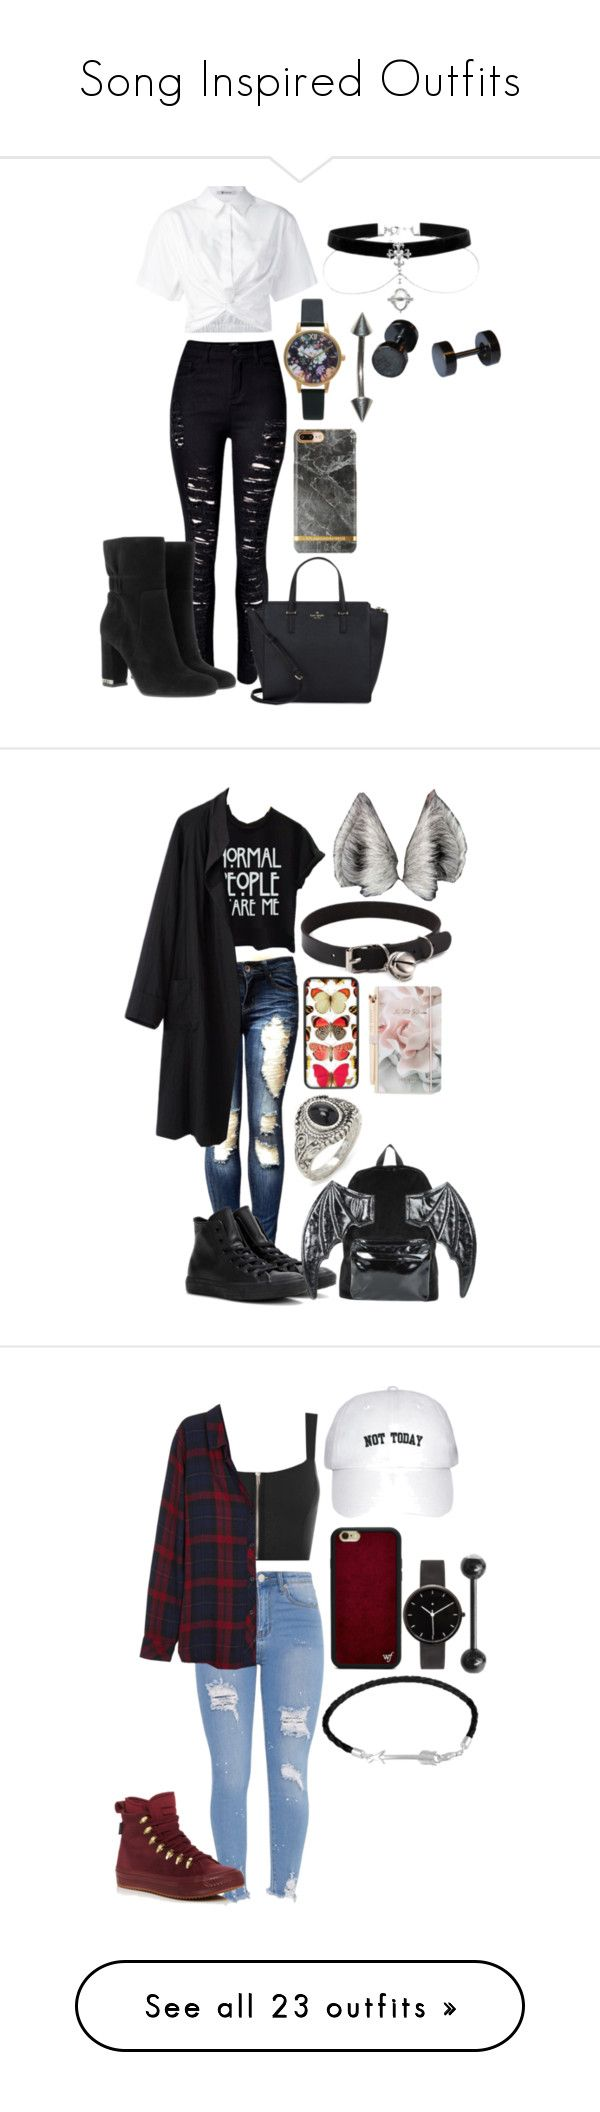 """Song Inspired Outfits"" by lazerpup104 on Polyvore featuring WithChic, T By Alexander Wang, MICHAEL Michael Kors, Olivia Burton, Kate Spade, Converse, La Garçonne Moderne, Iron Fist, Ted Baker and Forever 21"